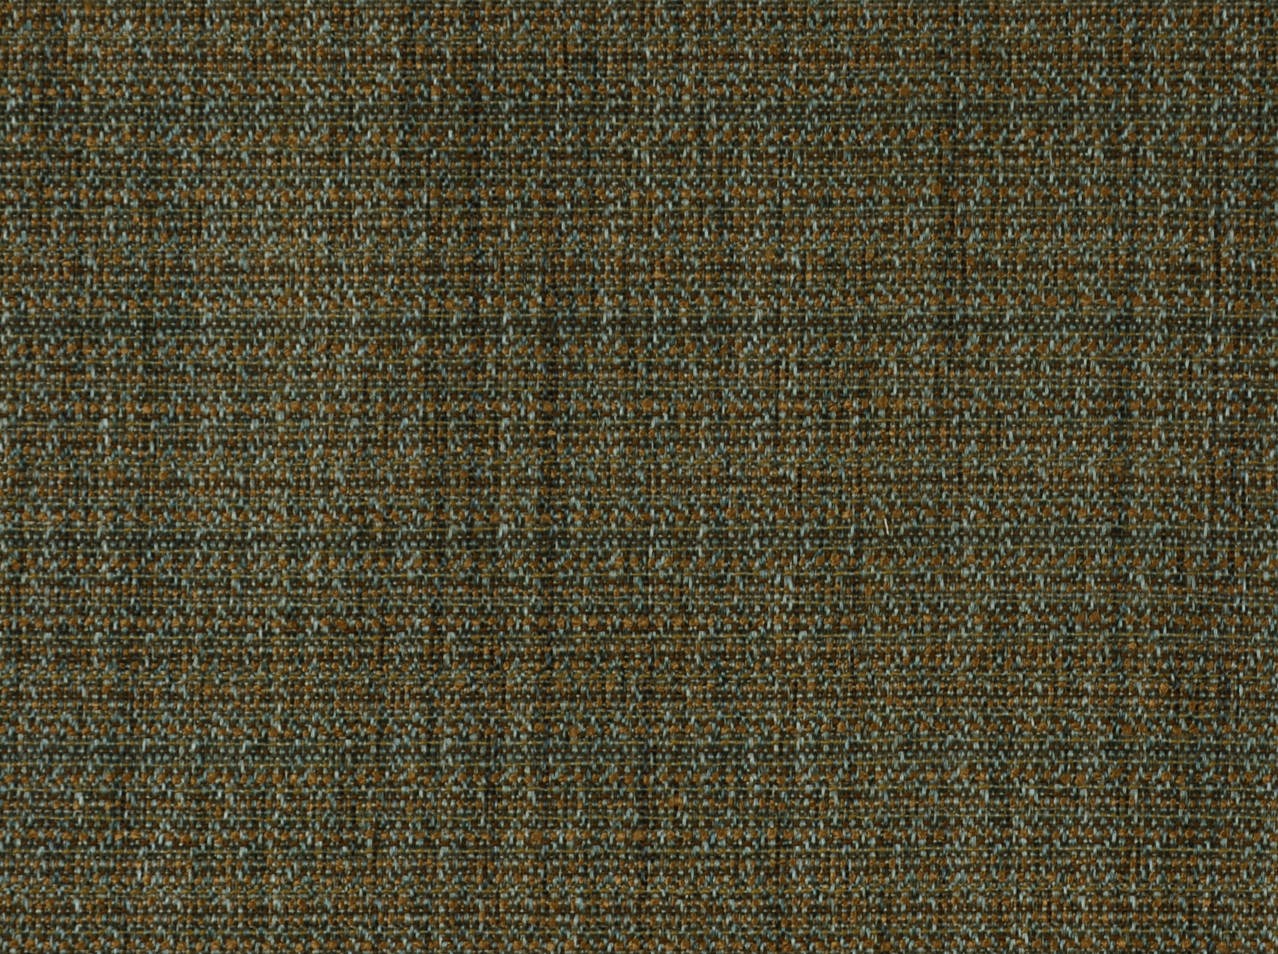 Covington Contract Products Fabric Type Upholstery La Plata River Rock